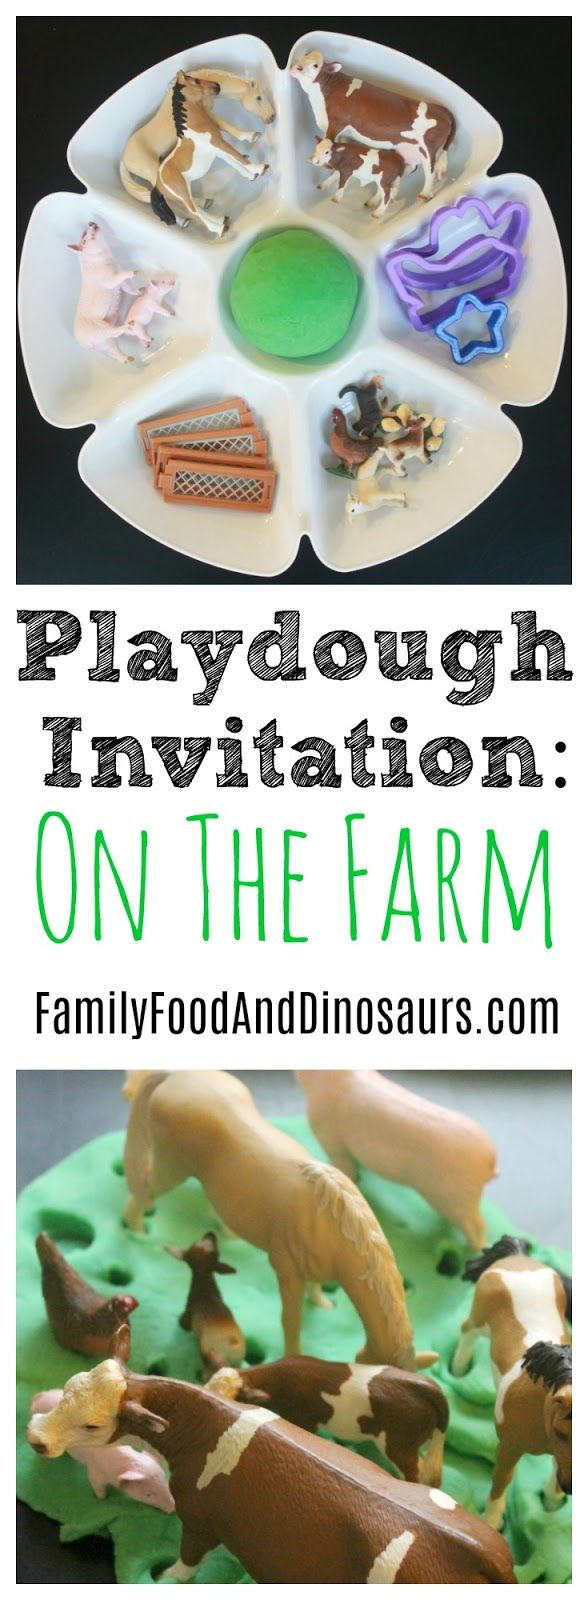 Playdough Kit: Down on the farm. A fun sensory activity for farm themed lessons. Subscribe to our newsletter for weekly learning ideas delivered right to your inbox! #playdoughkit #playdough #kit #invitation #farm #schliech